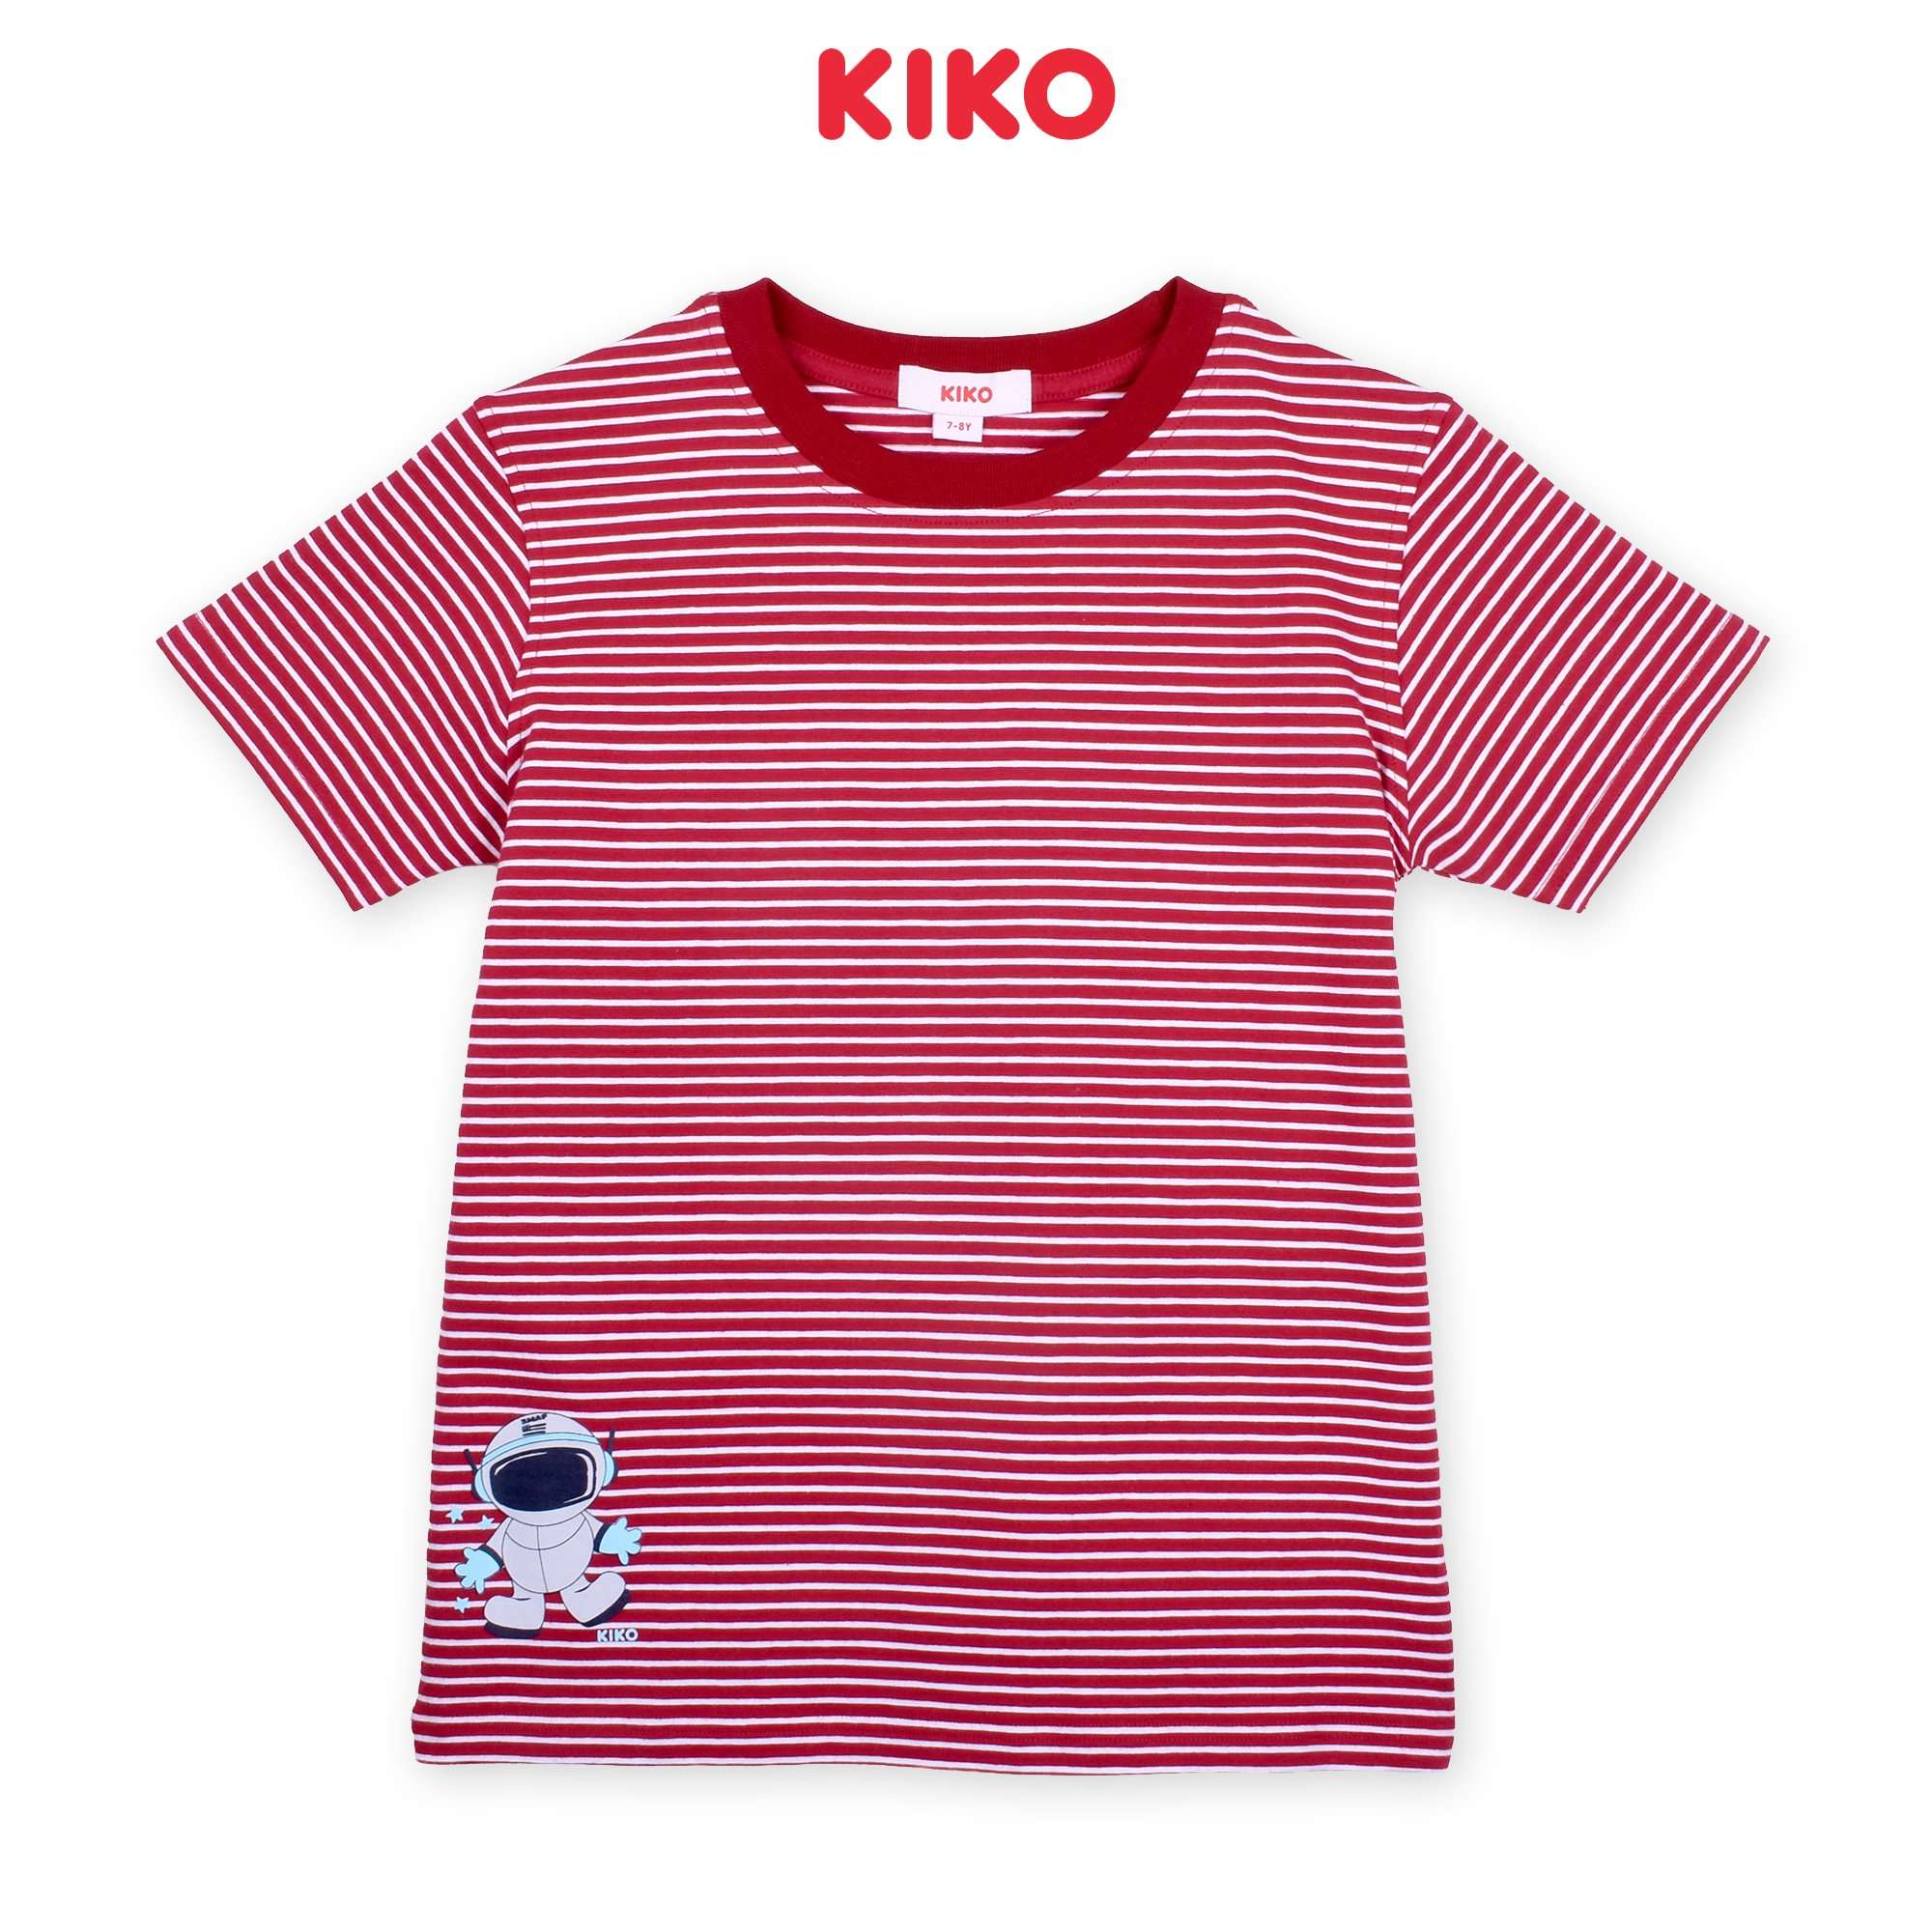 KIKO Boy Short Sleeve Tee - Red K923103-1107-R5 : Buy KIKO online at CMG.MY